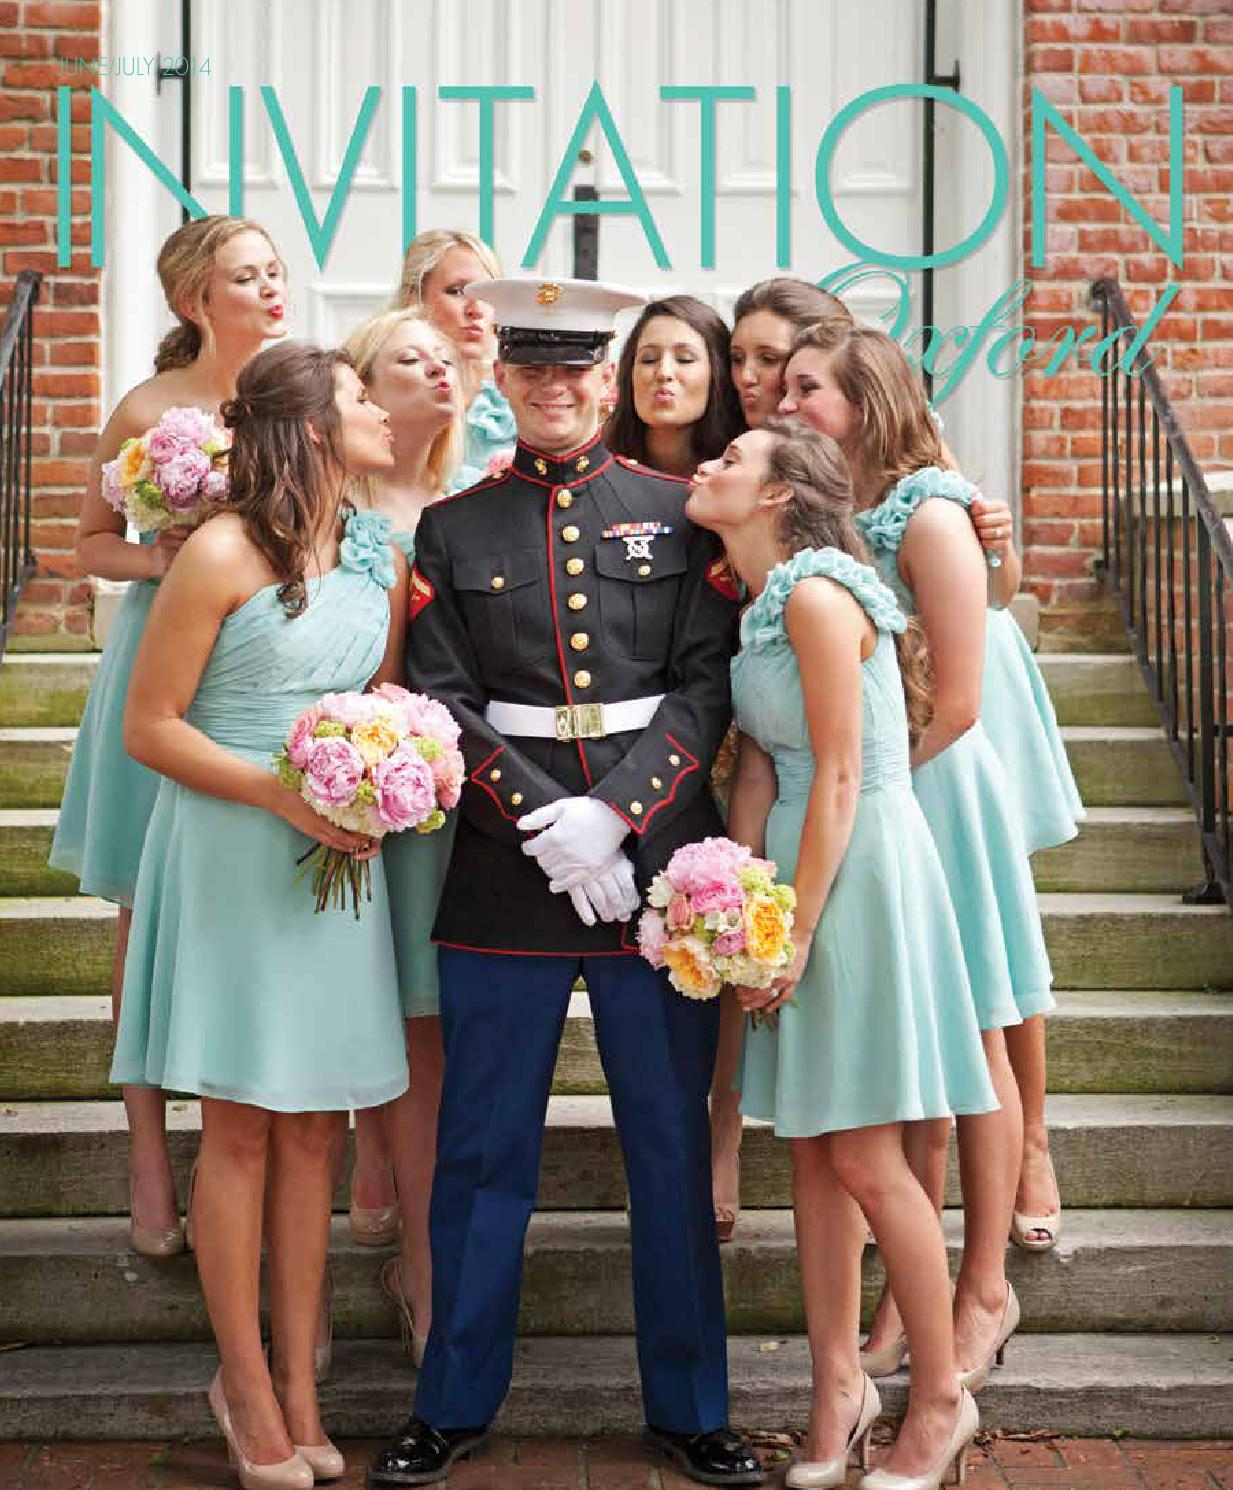 bridal 2014 by invitation magazines issuu